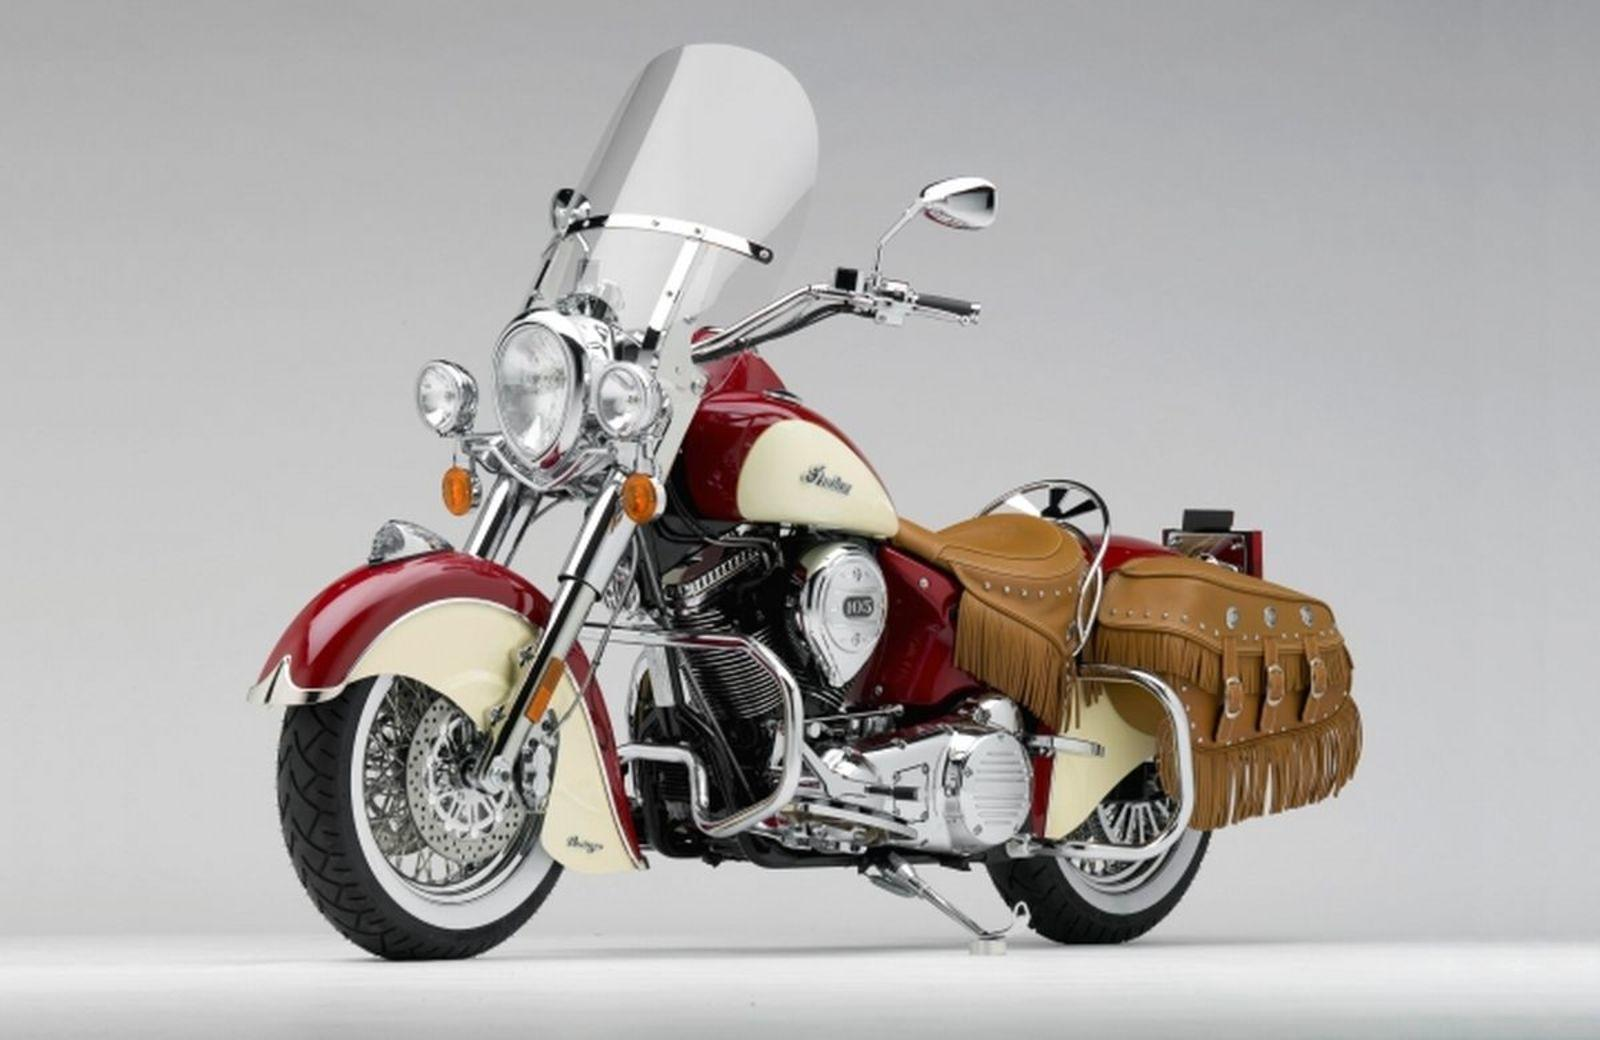 Indian Chief Classic >> 2012 Indian Chief Vintage Review - Top Speed